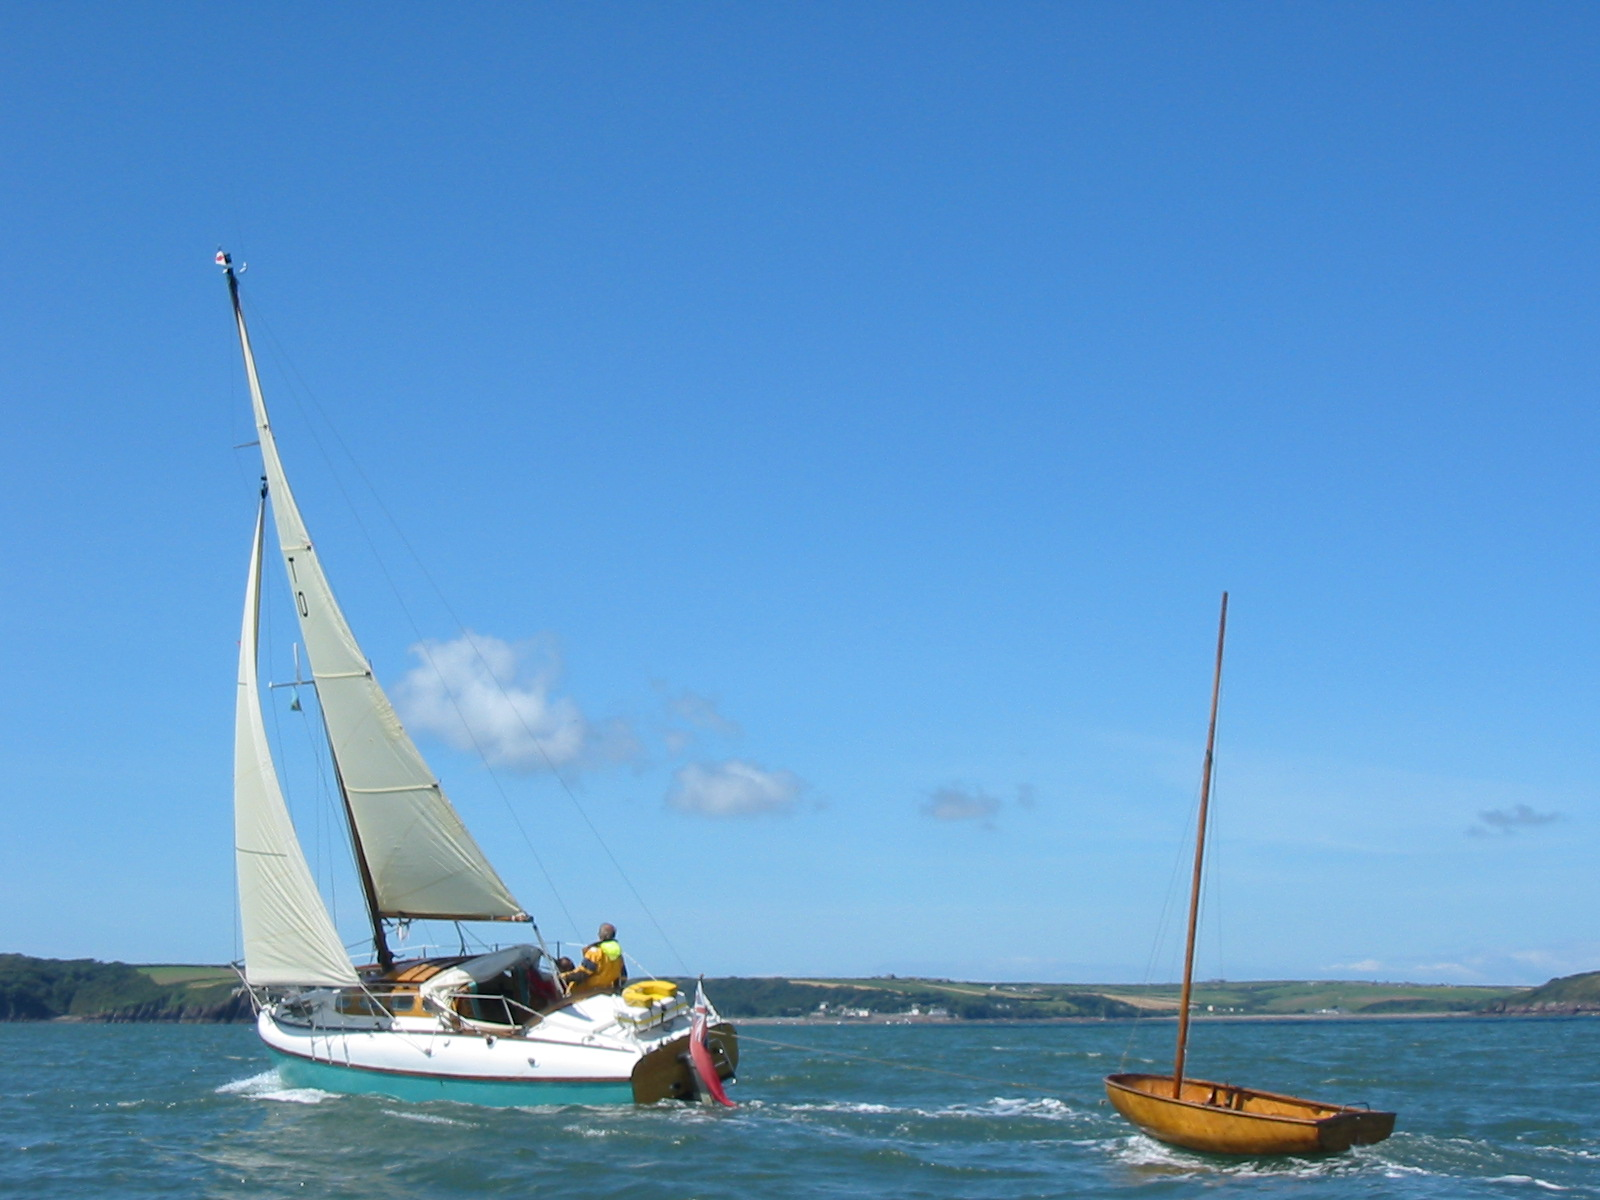 Calista towing a Fairy Duckling near Milford Haven